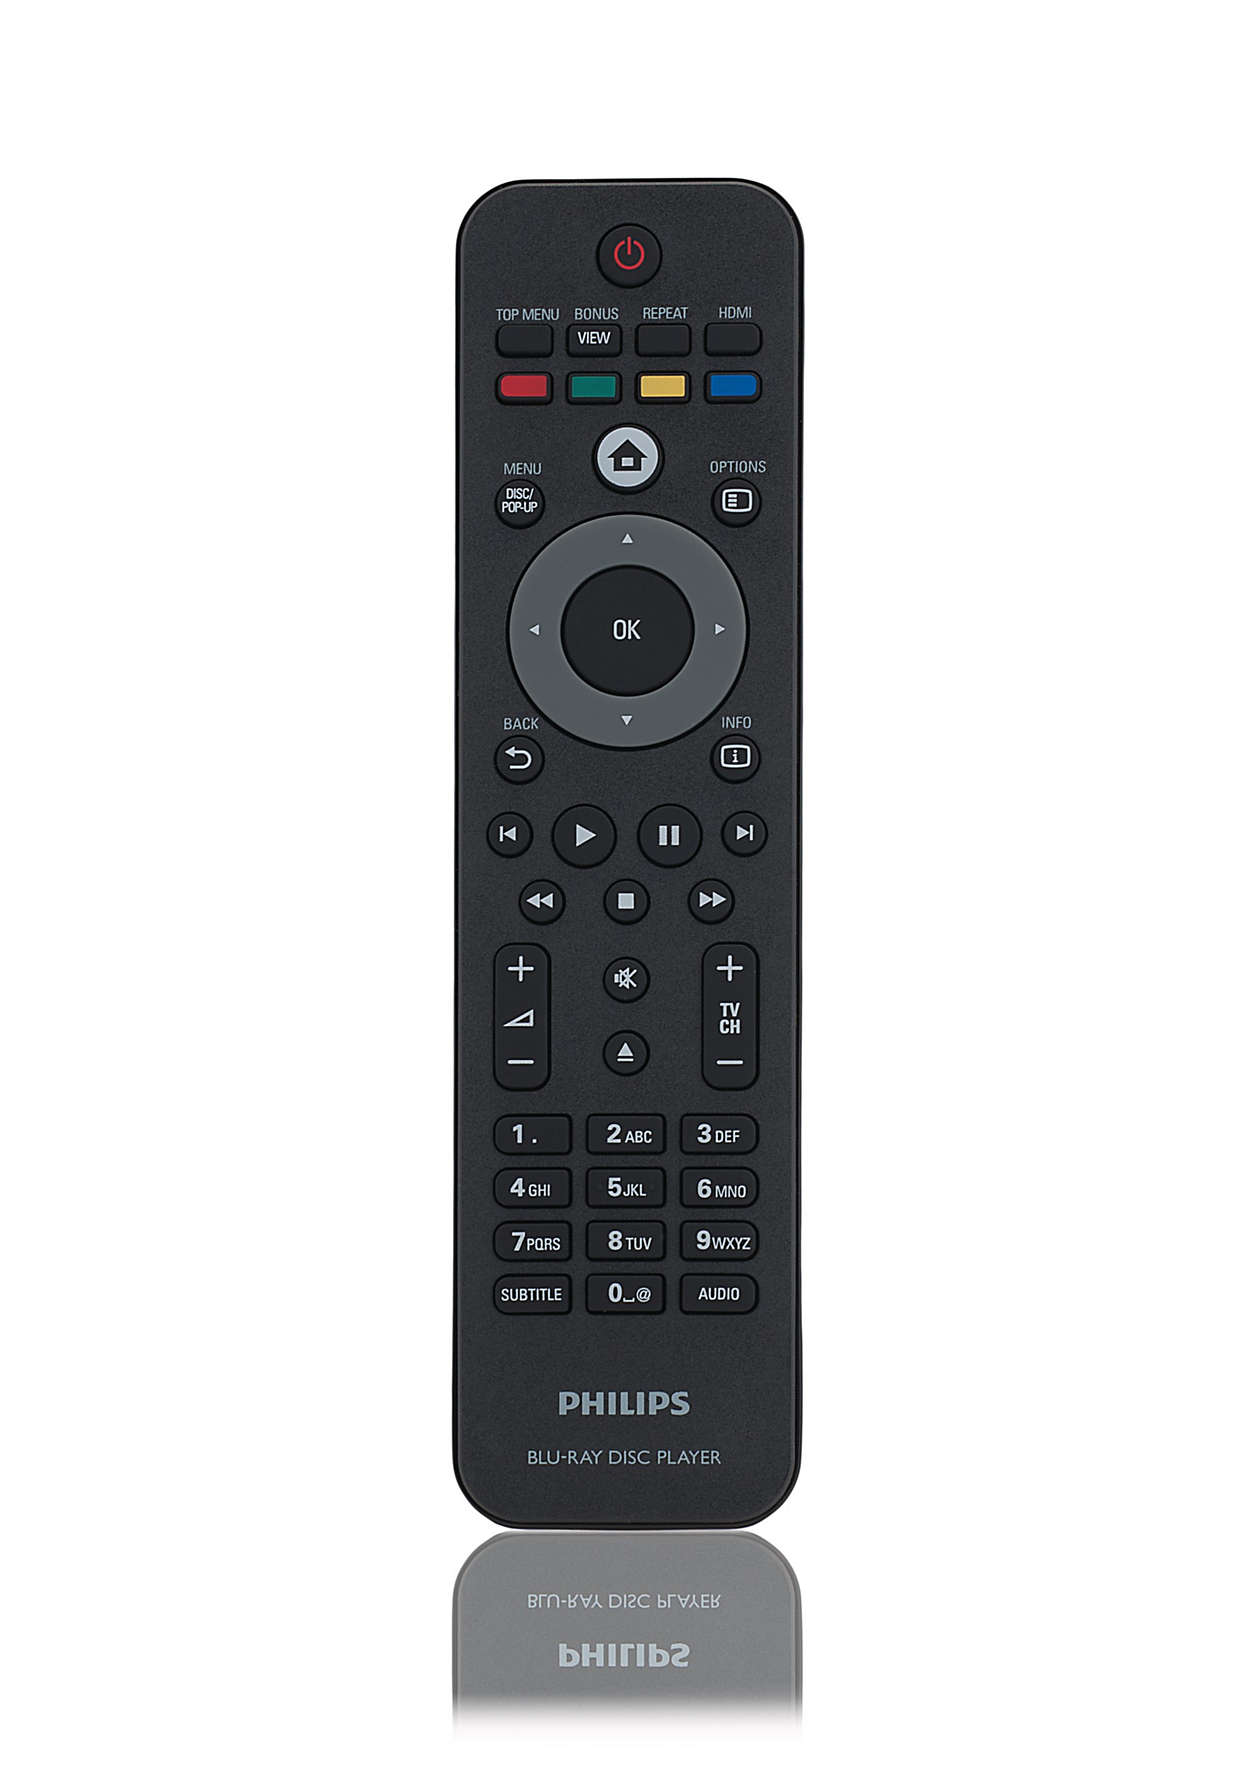 Remote control for blu-ray player